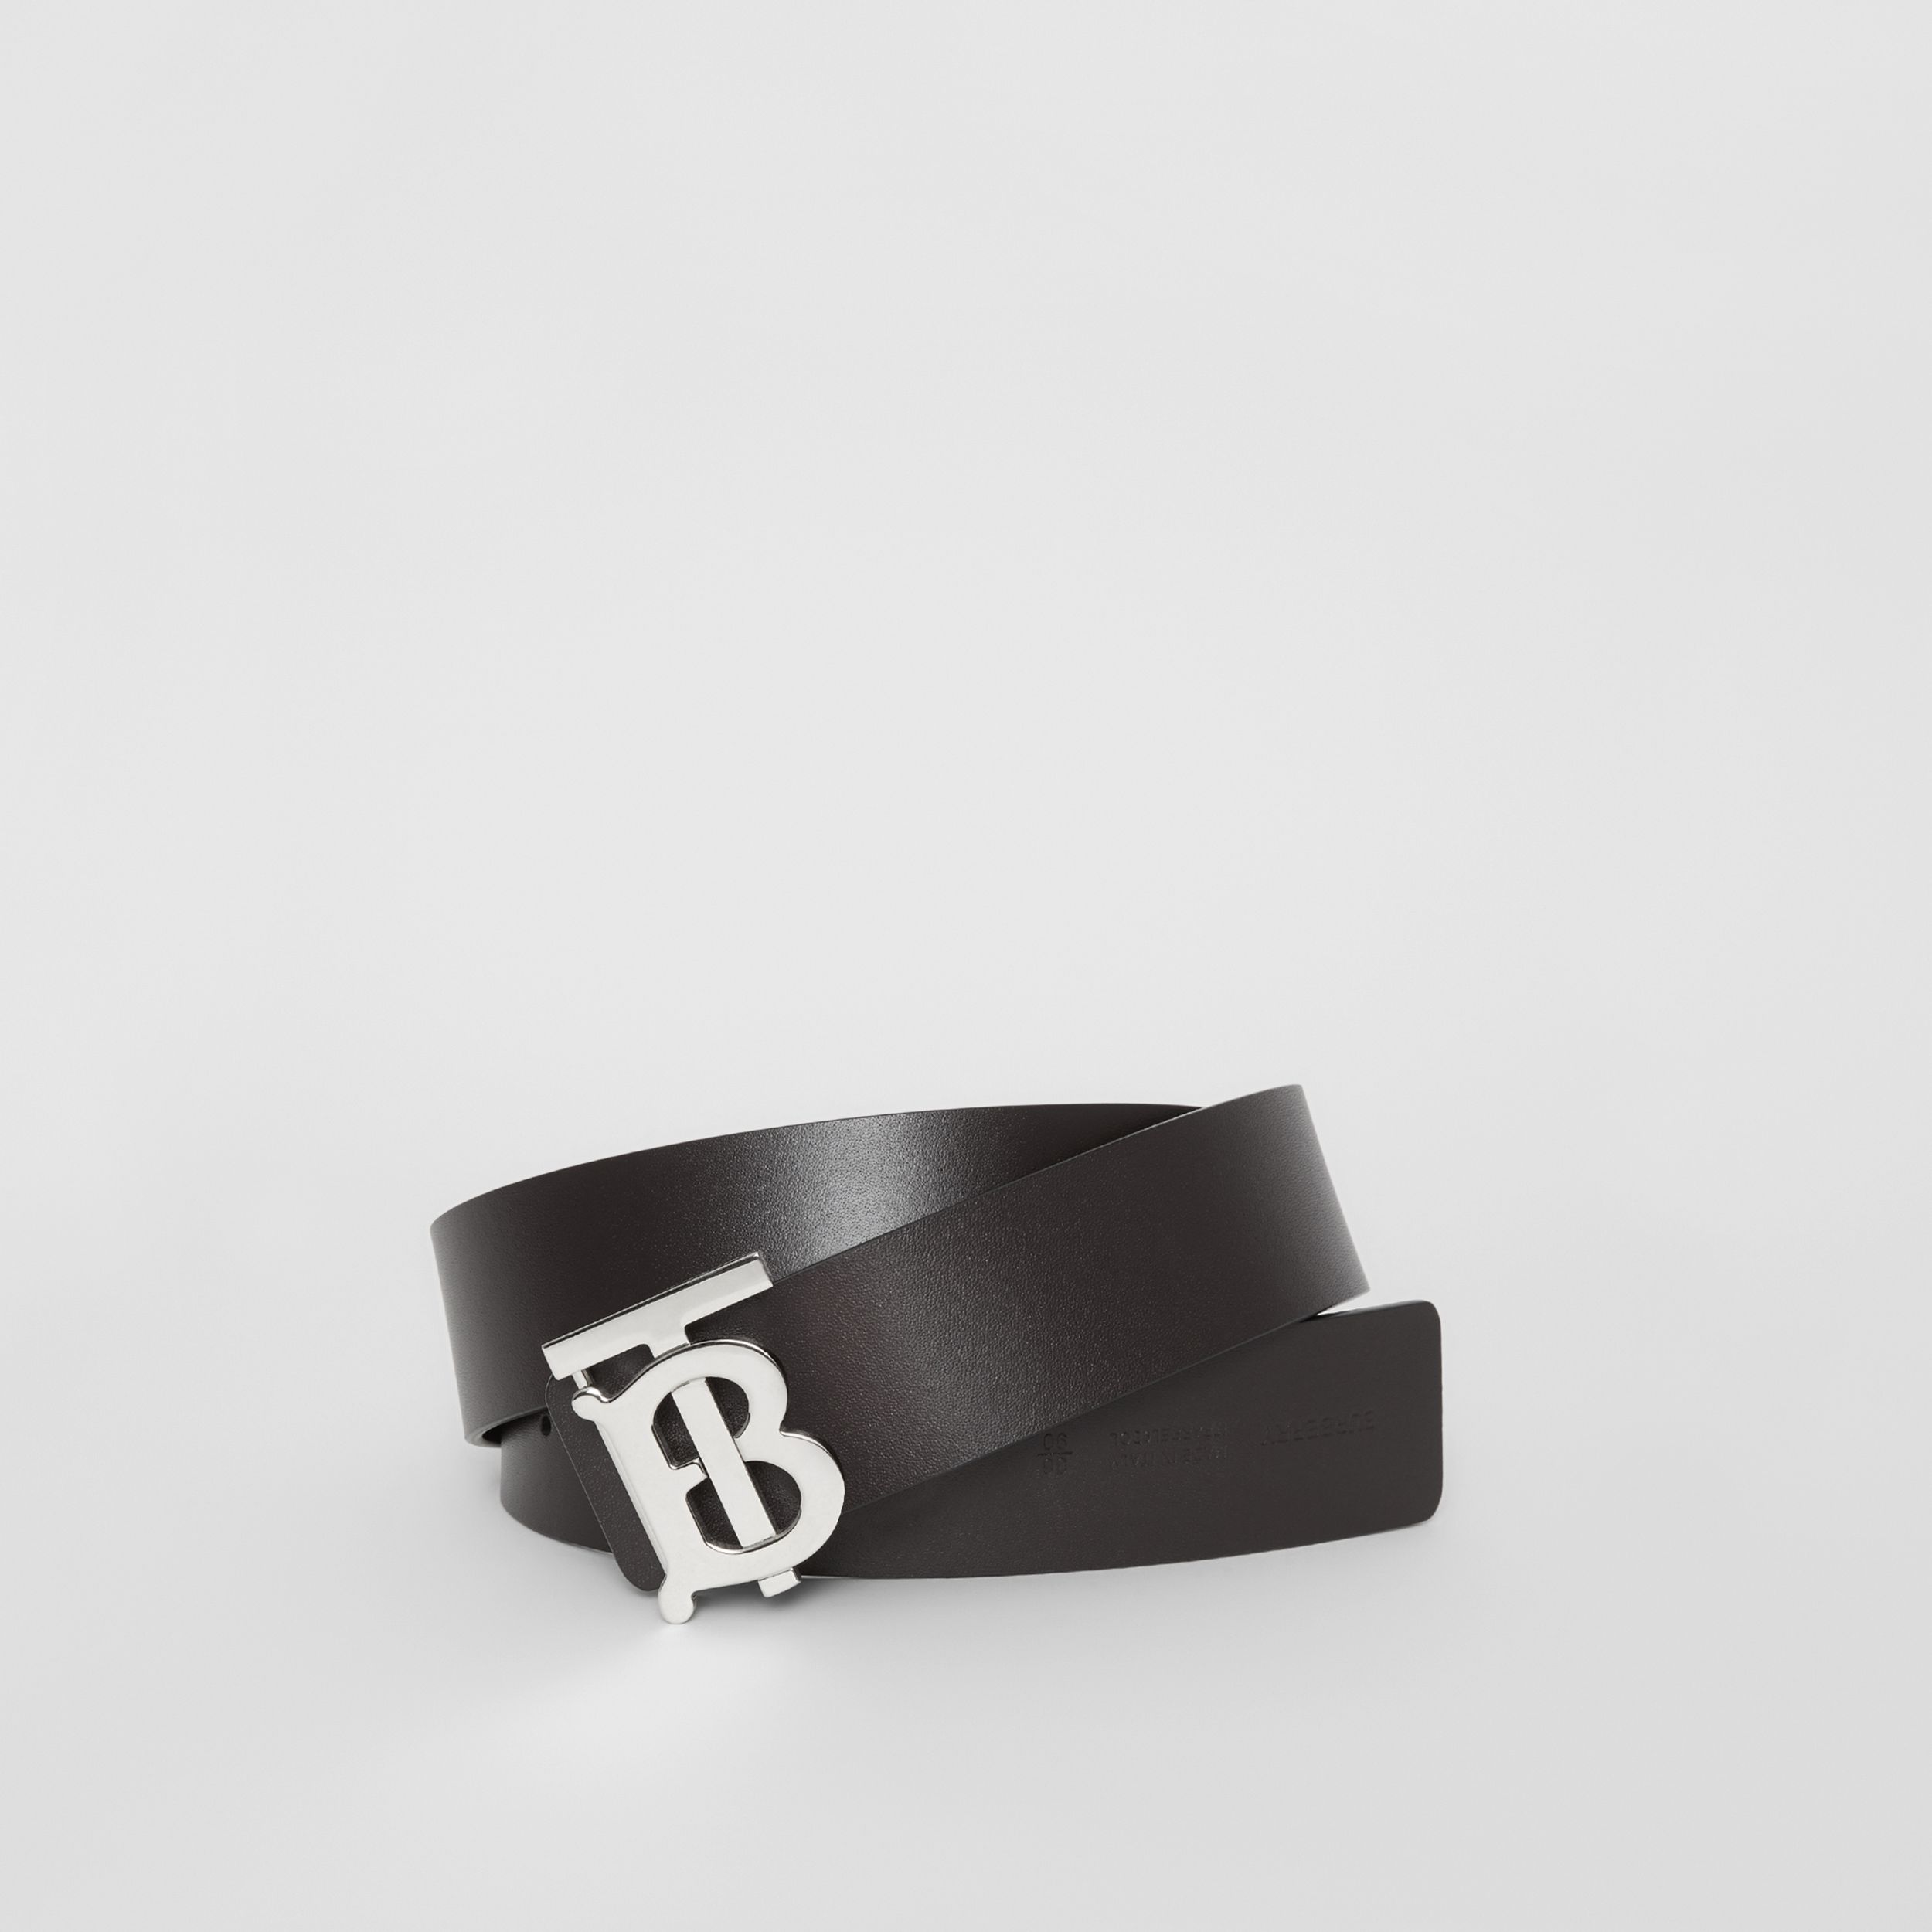 Reversible Monogram Motif Leather Belt in Black/malt Brown - Men | Burberry - 1